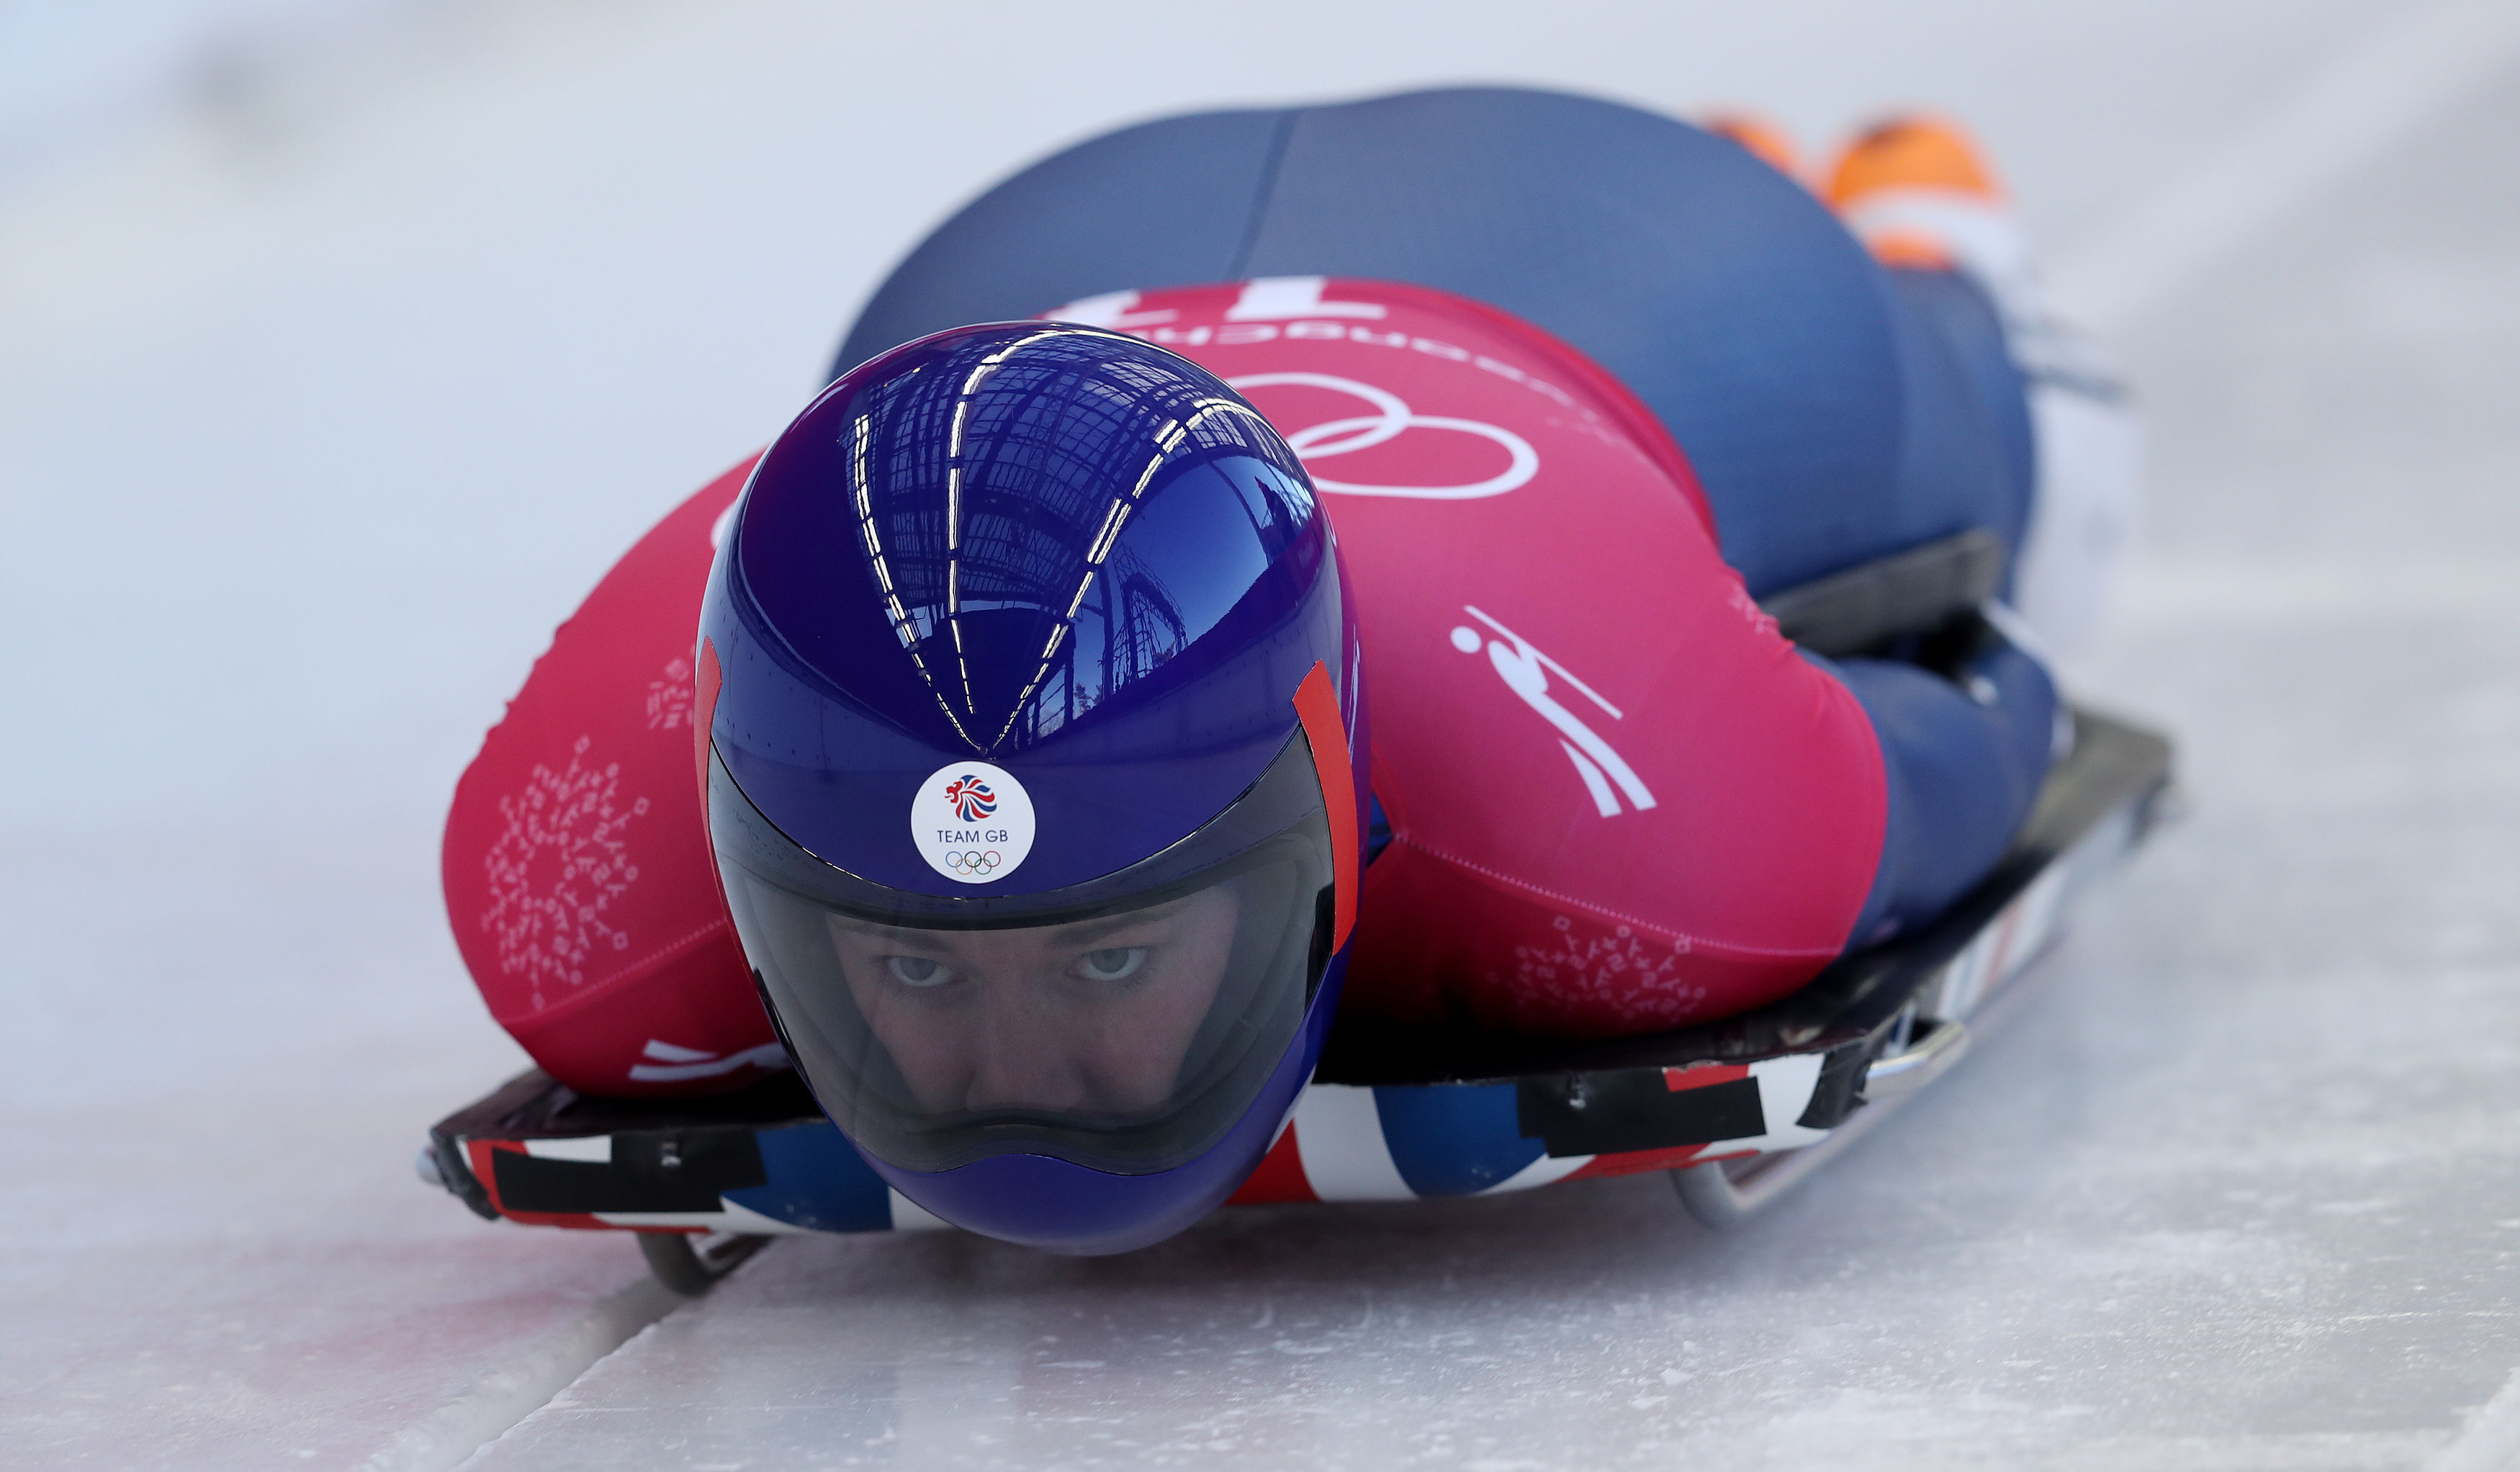 Lizzy Yarnold sets track record time to lead skeleton after first heat